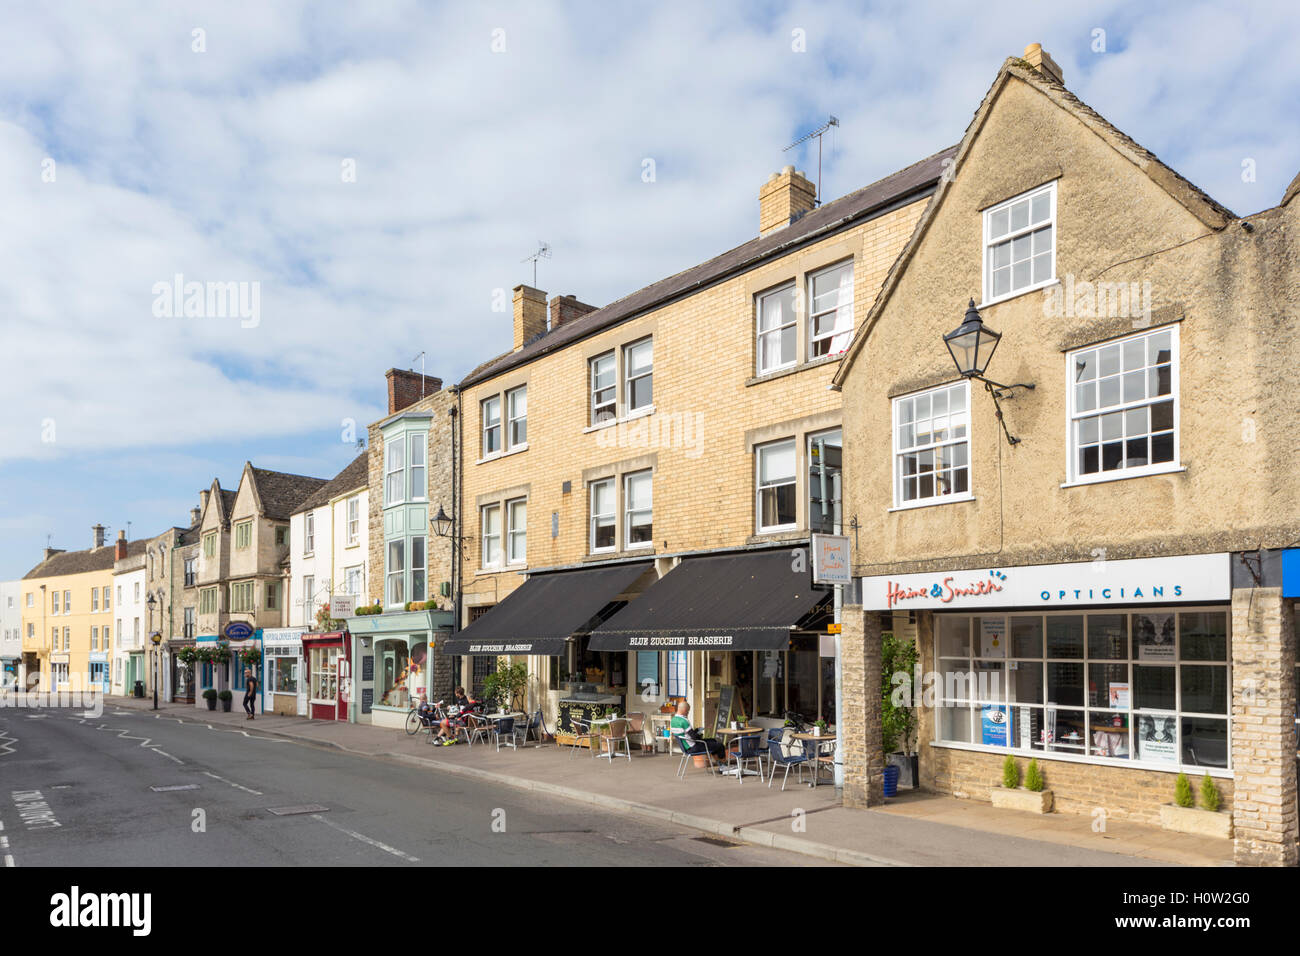 The Cotswold town of Tetbury, Gloucestershire, England, UK - Stock Image